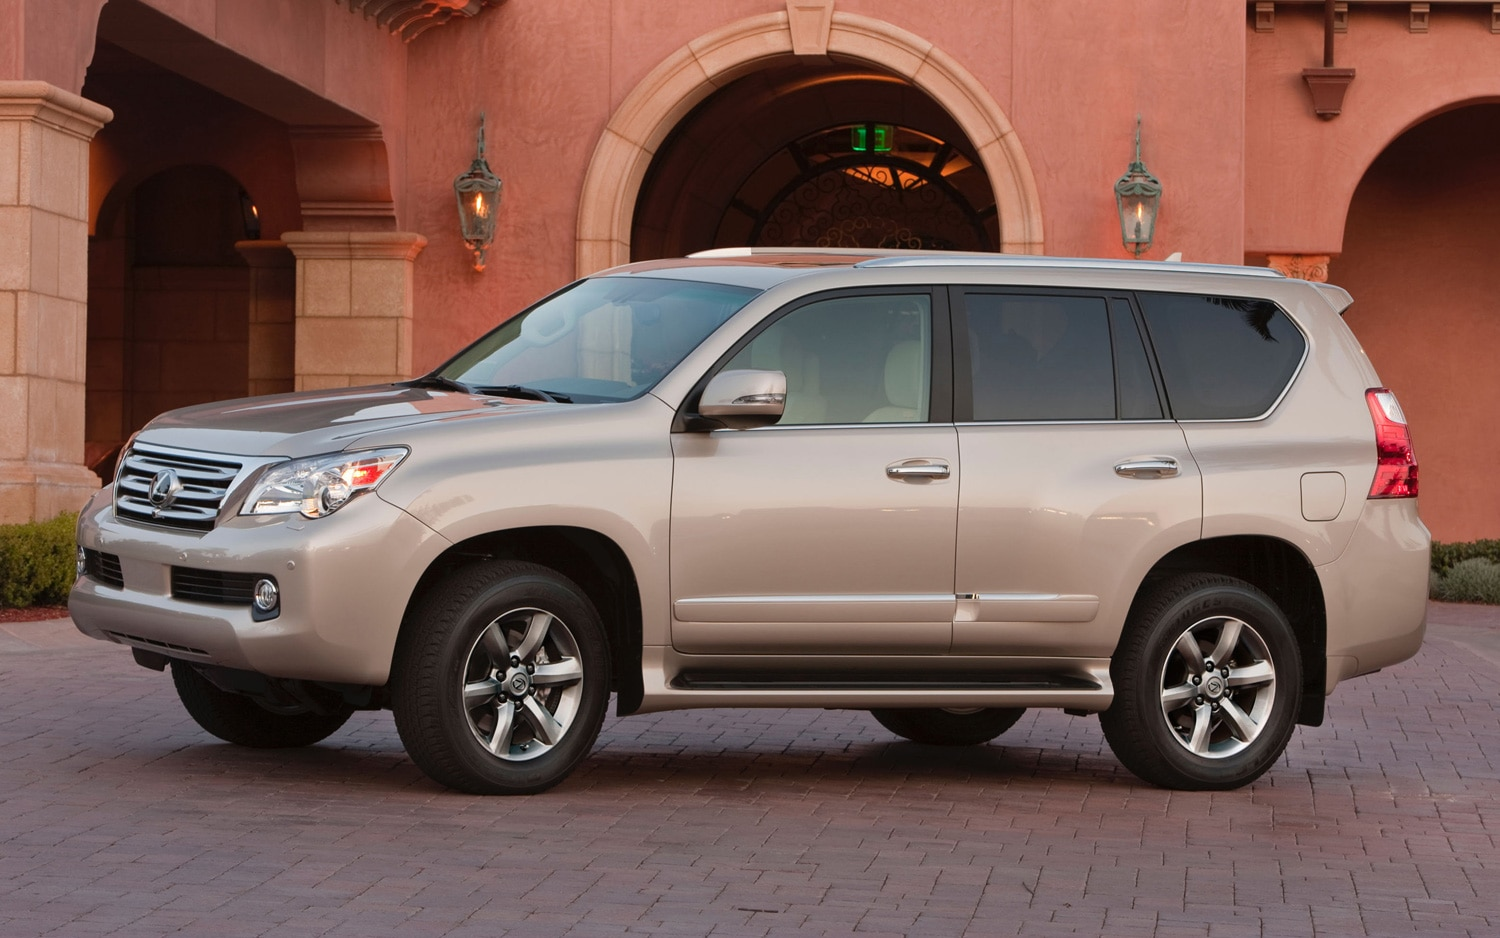 report lexus considering unibody gx turbocharged engines. Black Bedroom Furniture Sets. Home Design Ideas